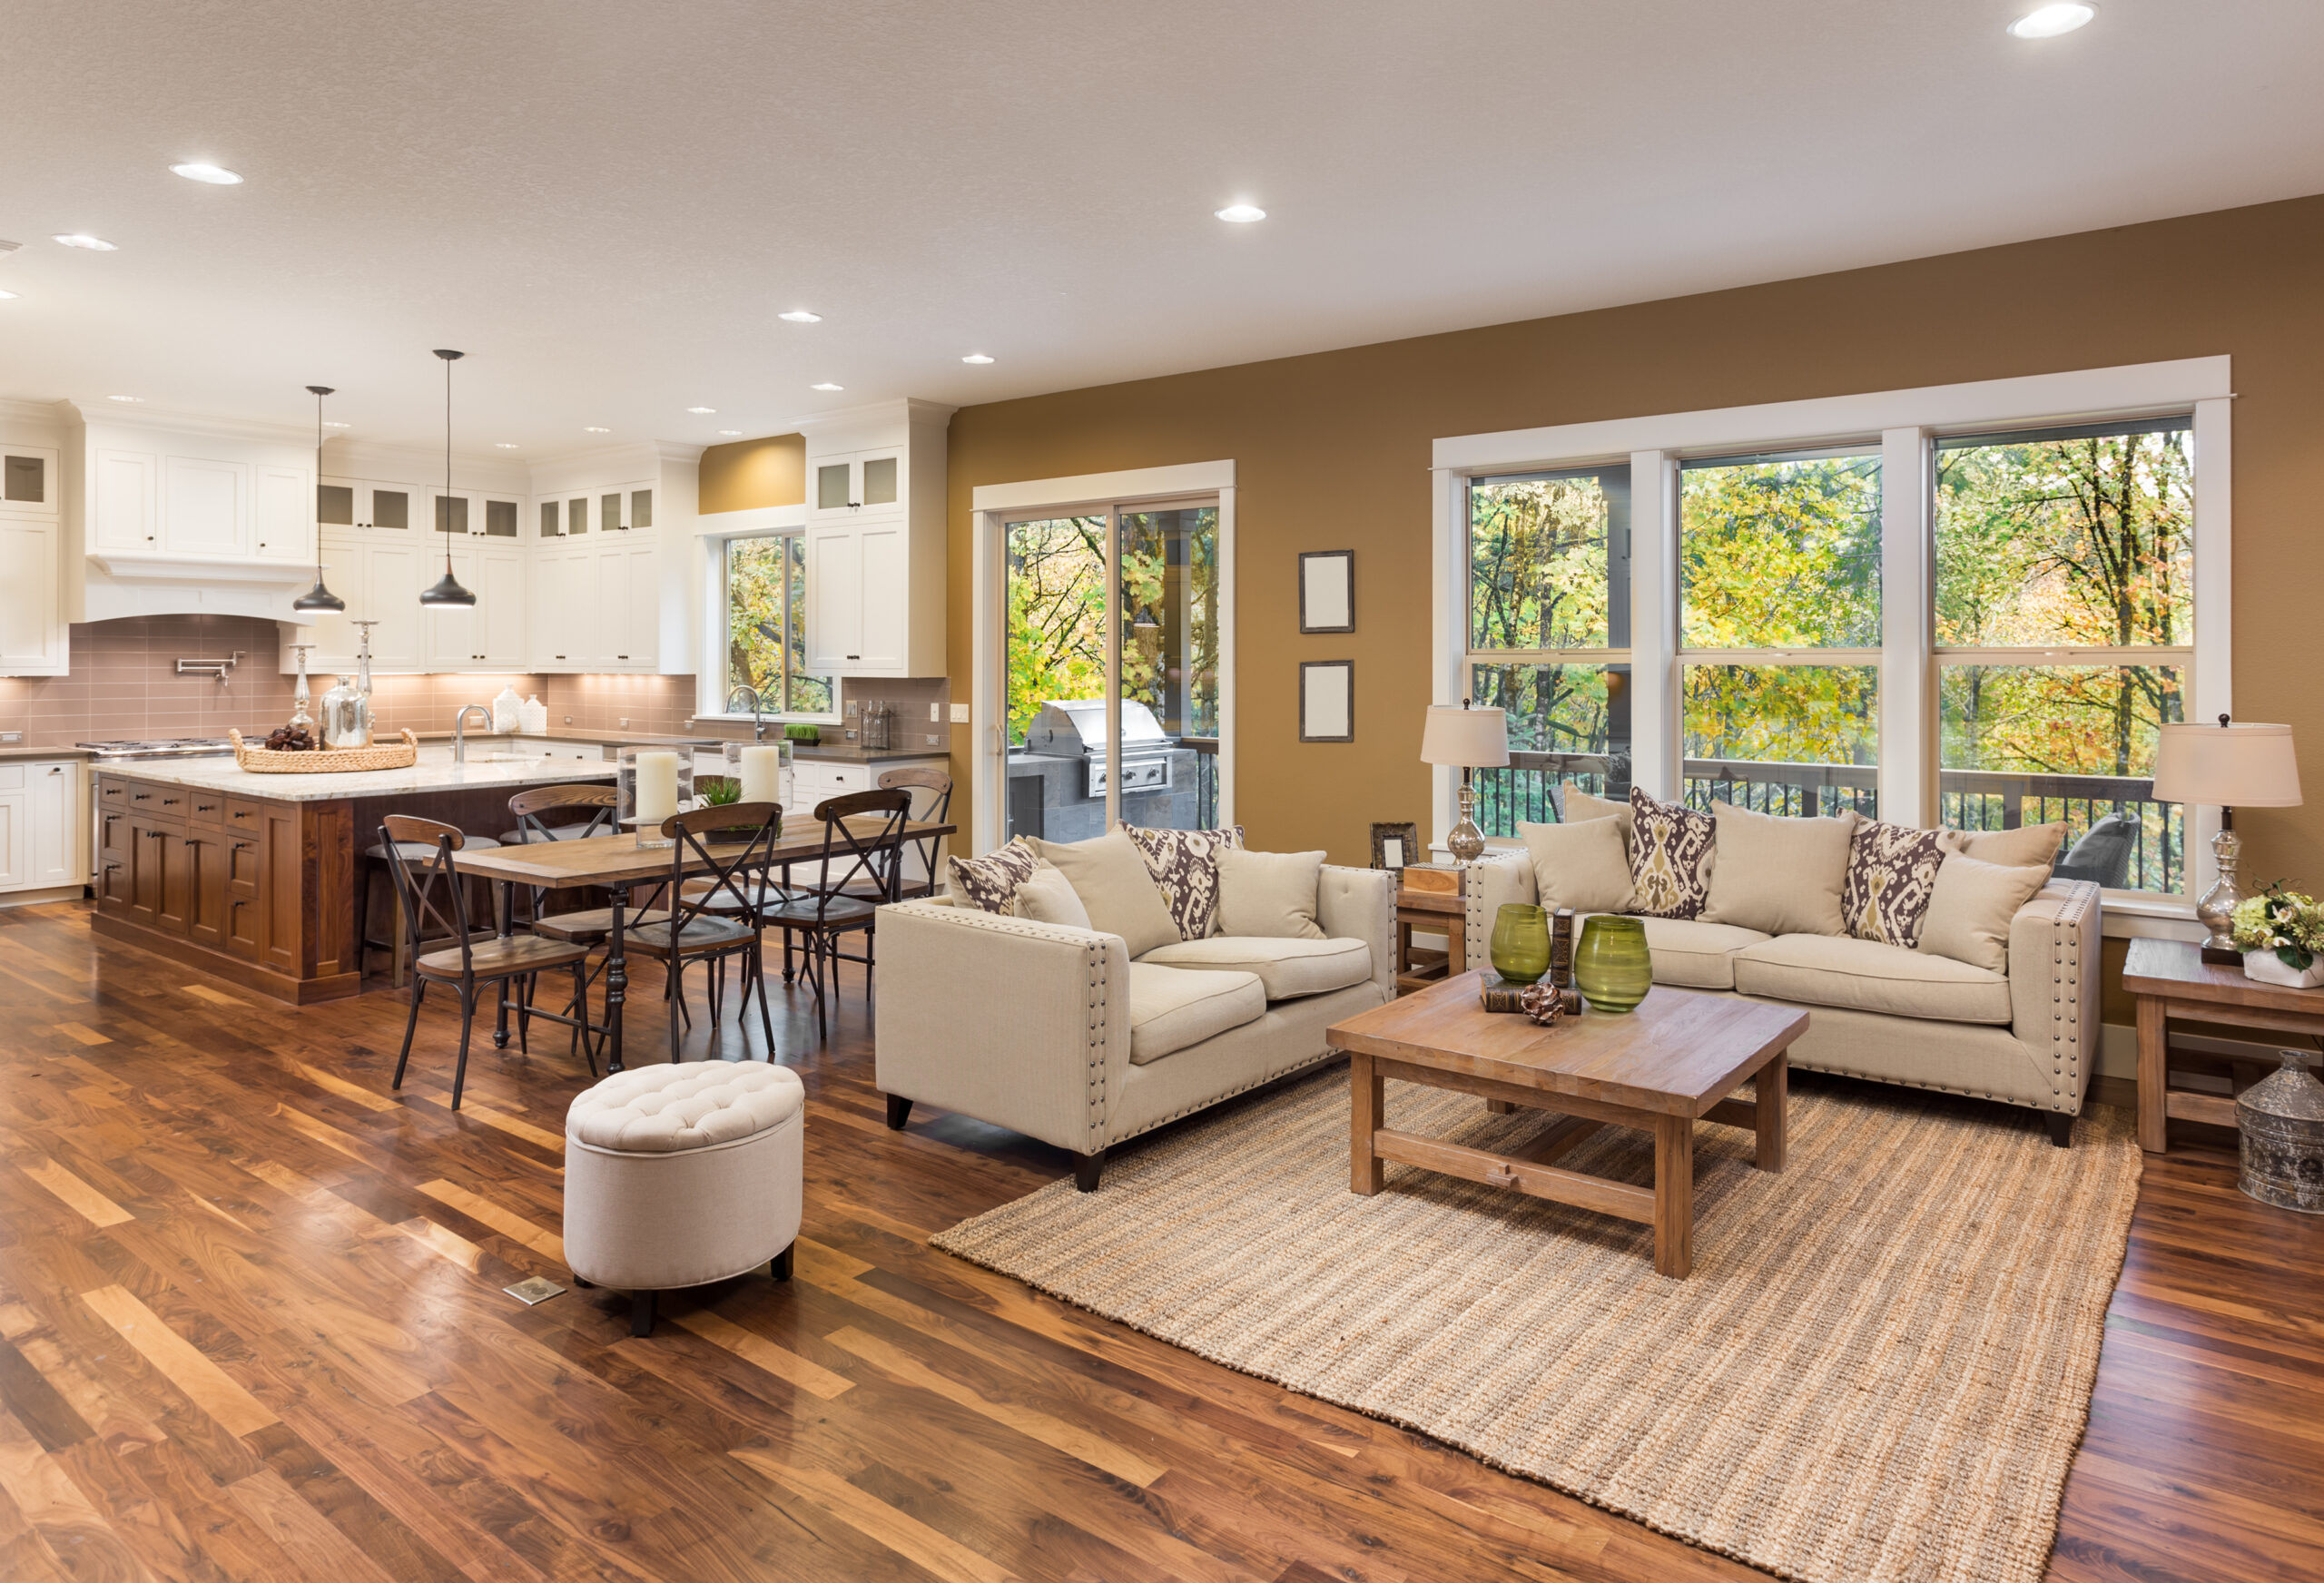 Beautiful,Living,Room,Interior,With,Hardwood,Floors,And,View,Of